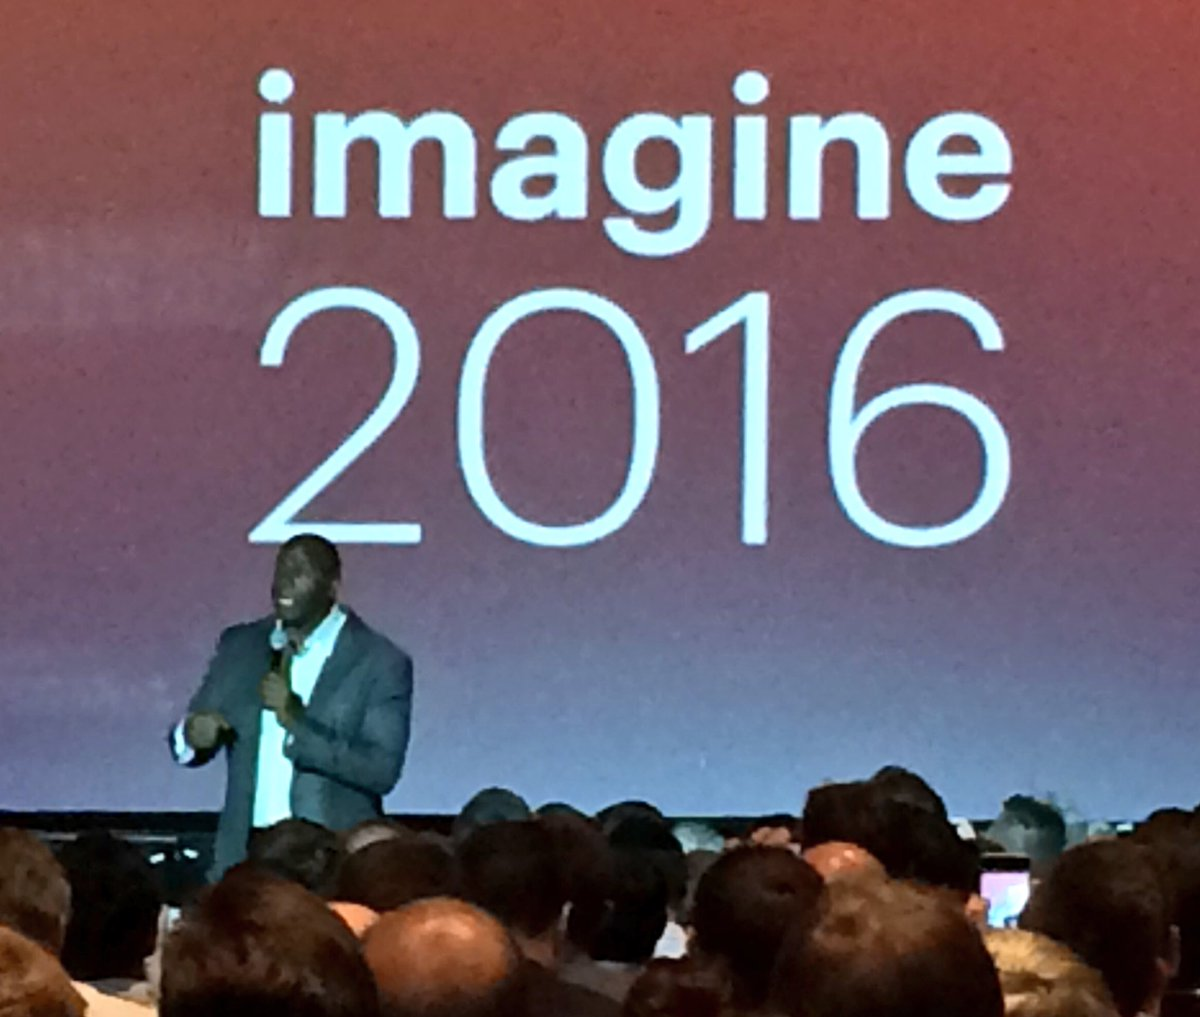 benjaminrobie: Mr. Magic Johnson #MagentoImagine https://t.co/TZQorUs8XI